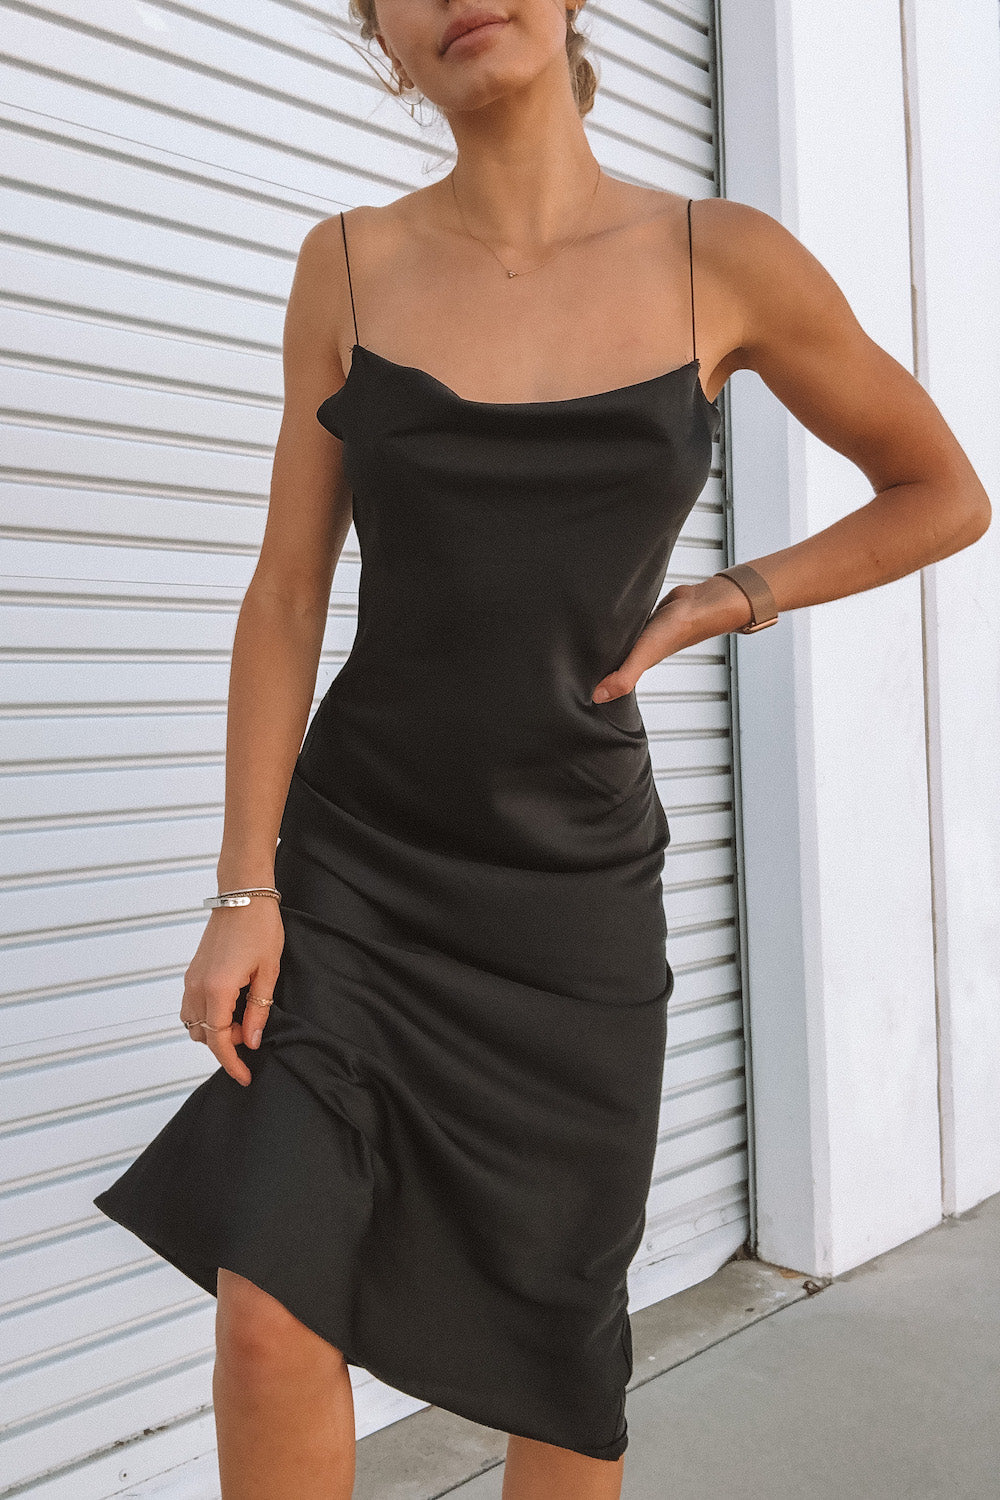 Black satin midi dress.